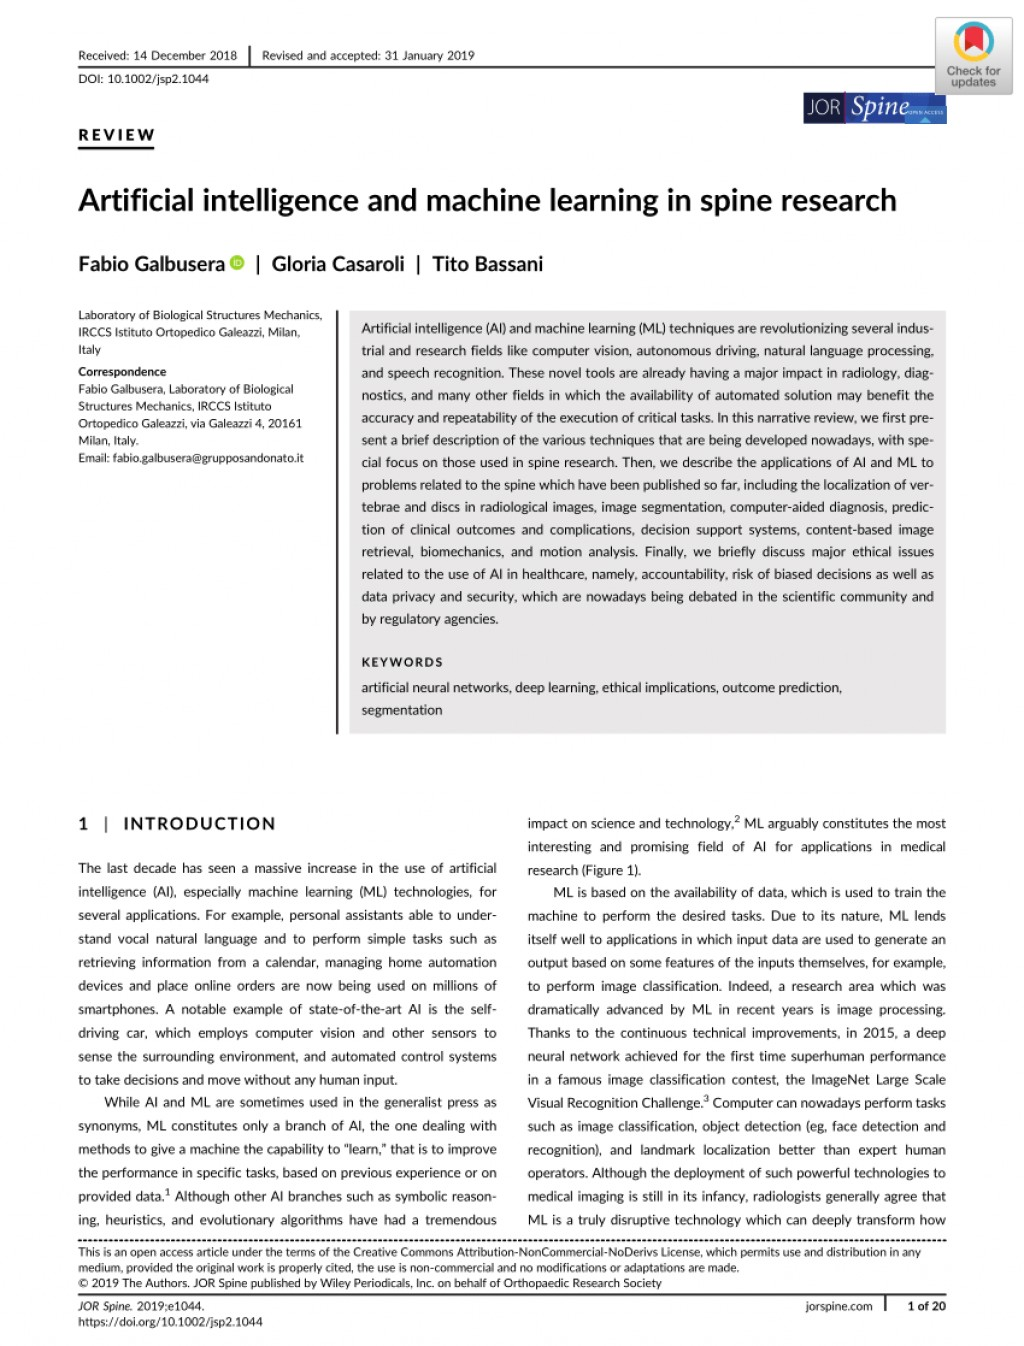 006 Artificial Intelligence Research Paper Awful 2019 Large